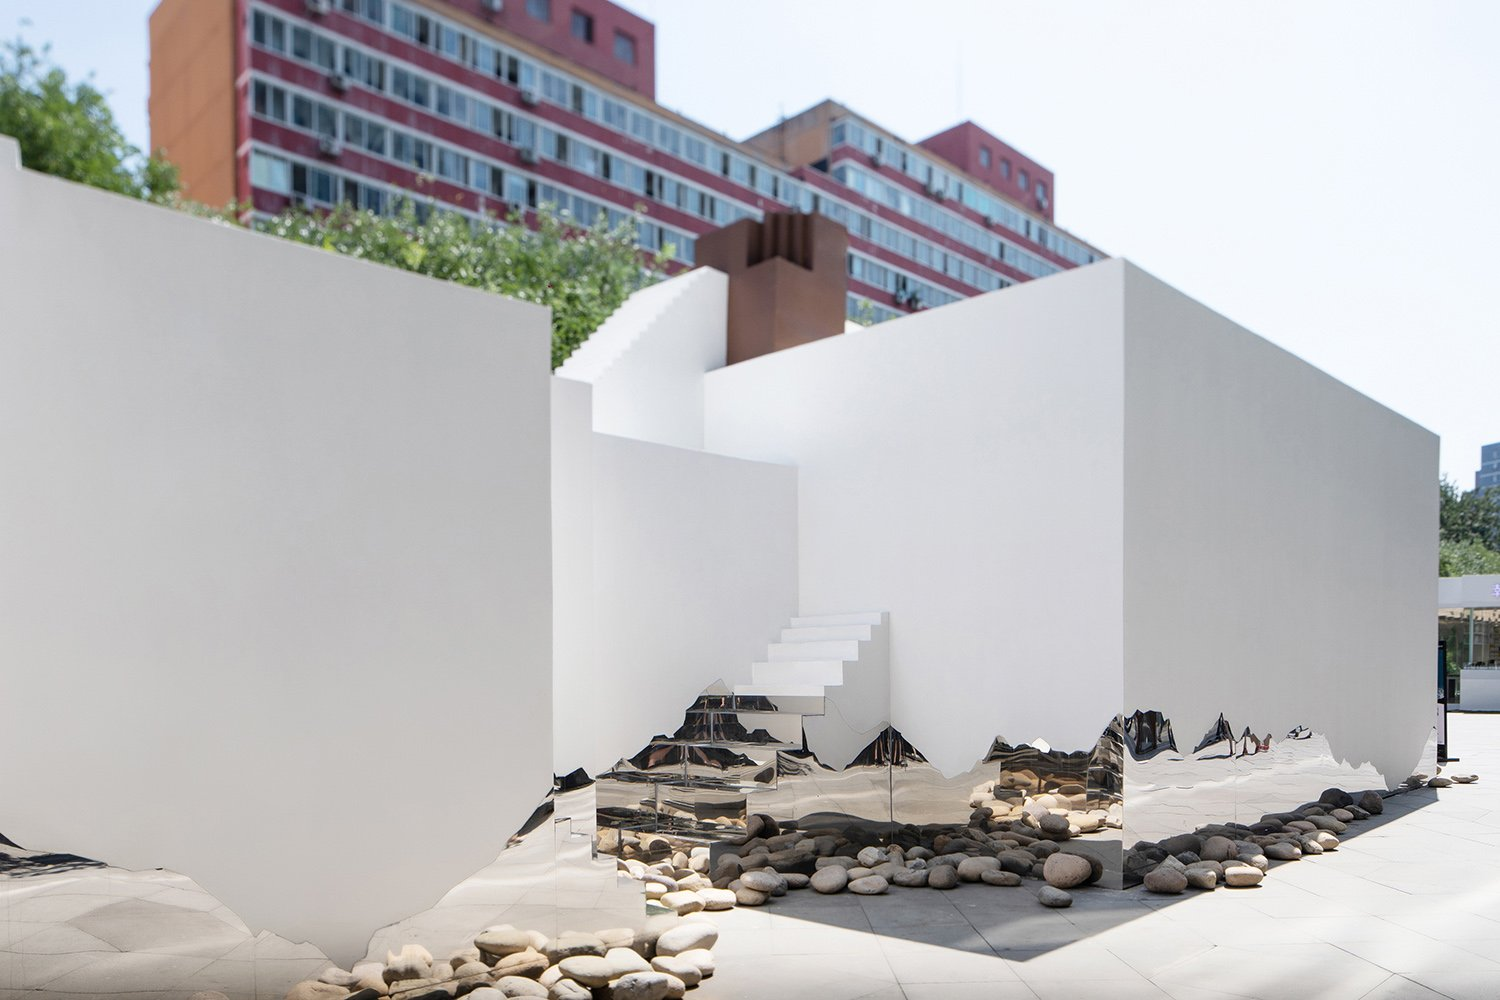 Steps make this pavilion more interesting and create a sharp contrast to the serious and dull urban space. Wang Shilu